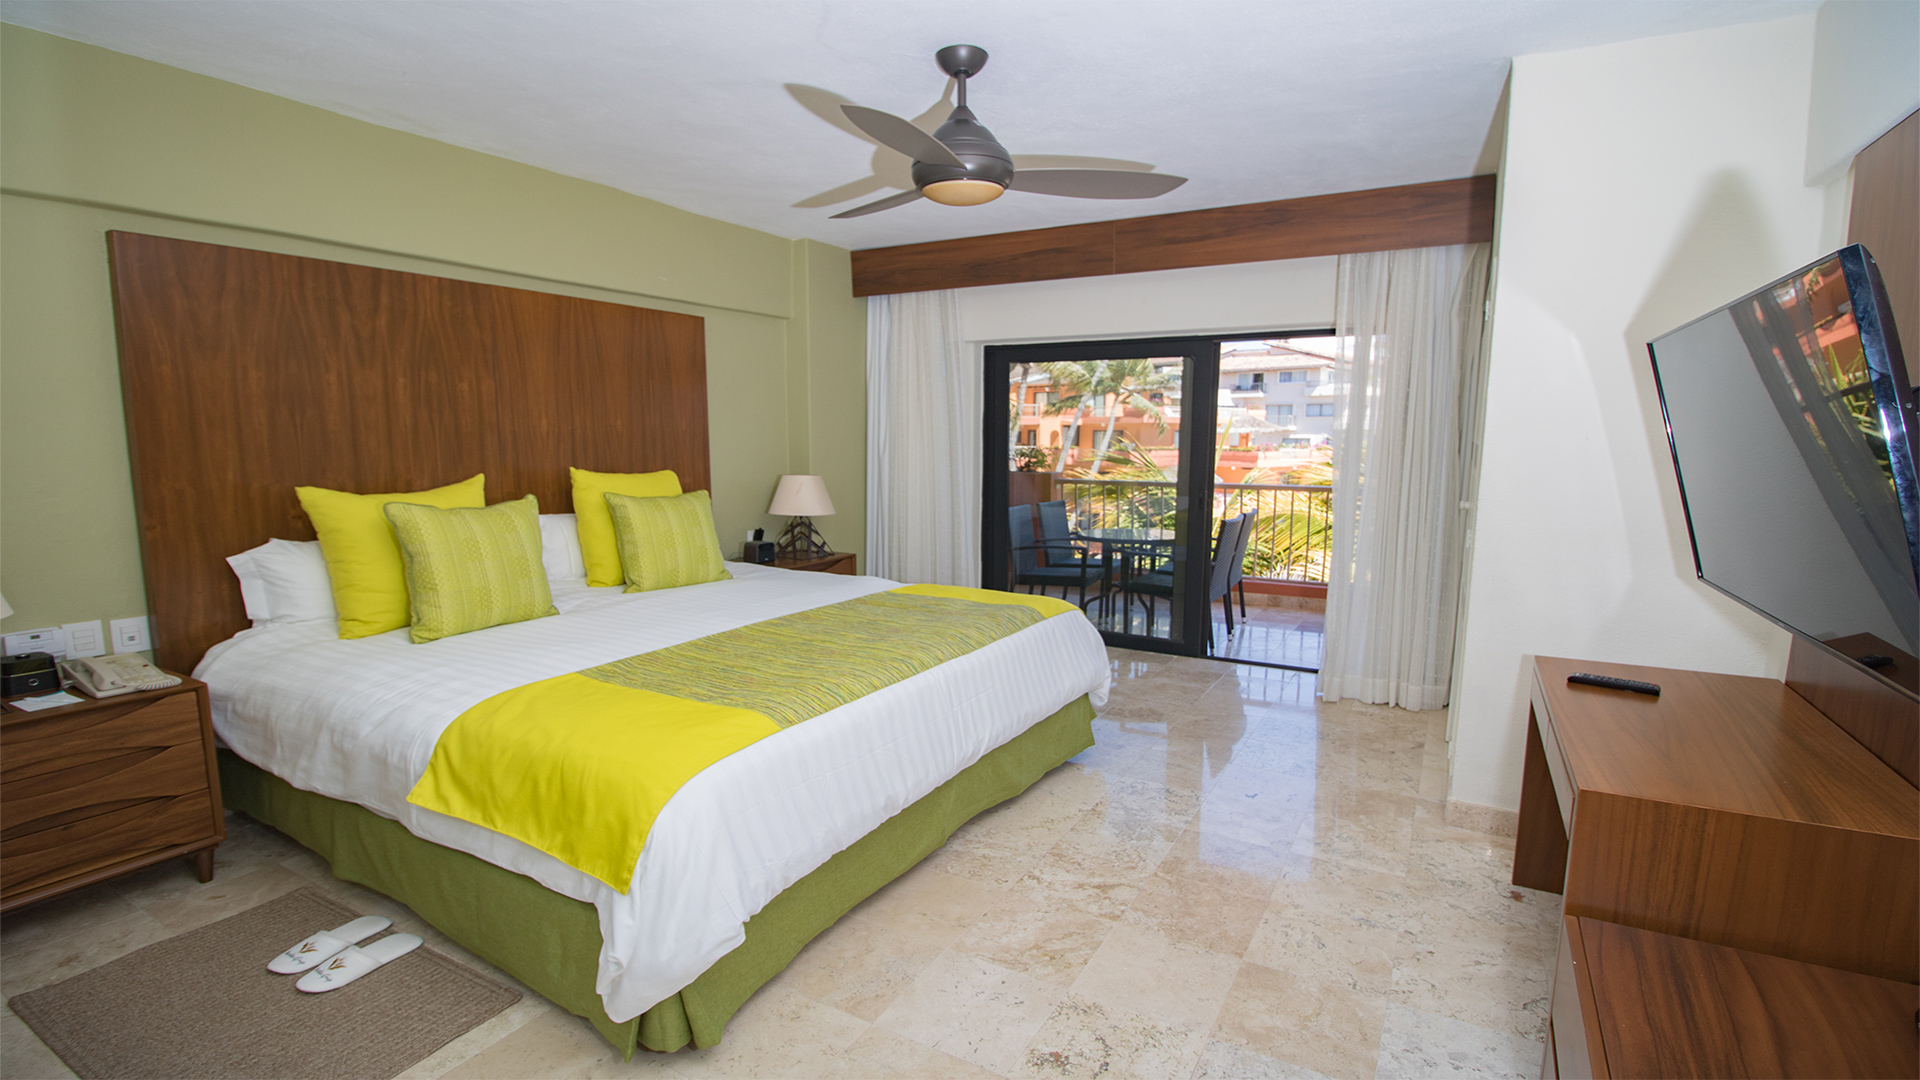 Unique villa del palmar puerto vallarta two bedroom suite 2